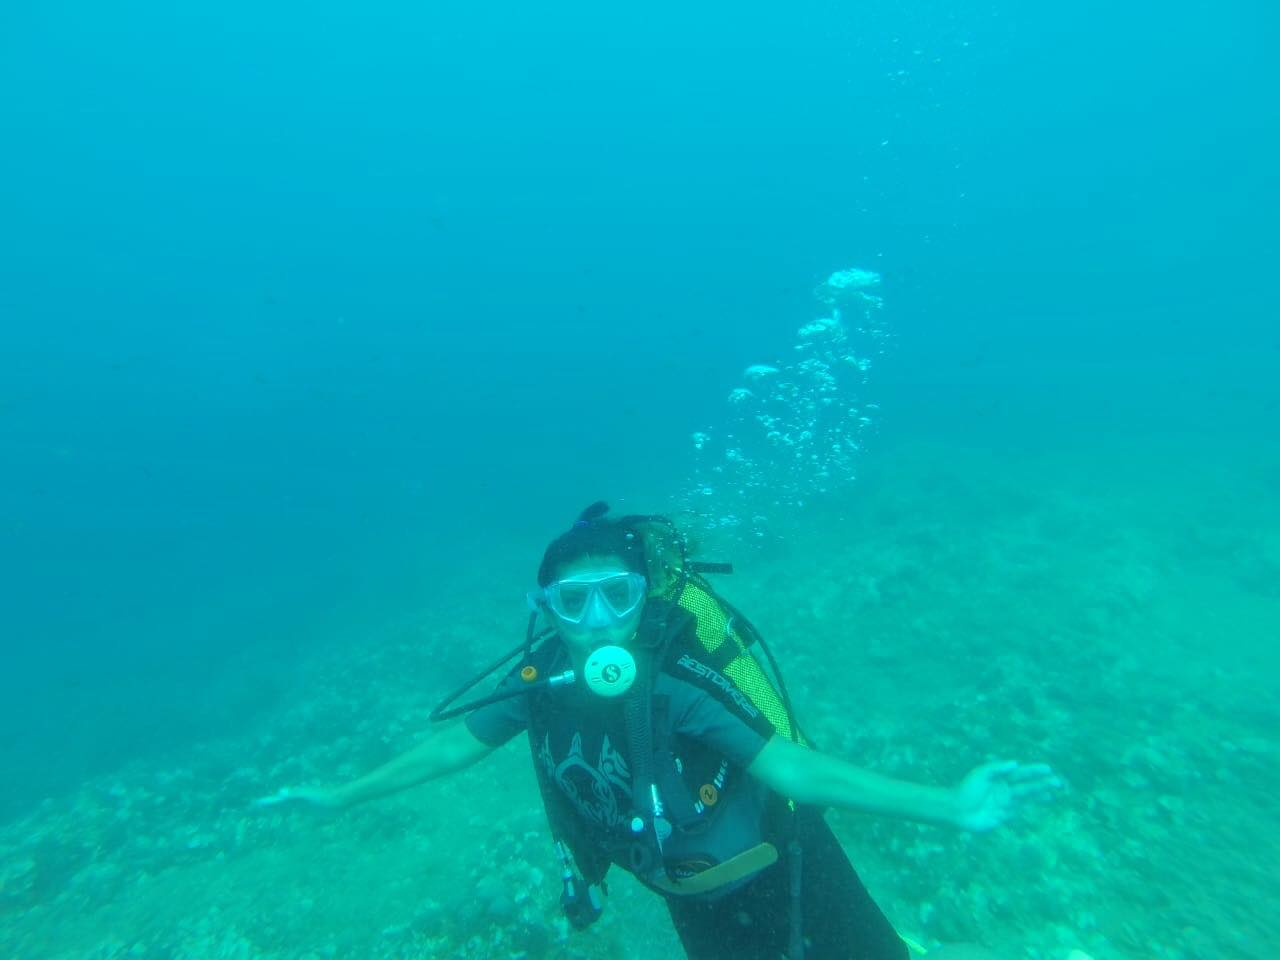 Kach Solo Travels Day 9: Scuba Diving in Herceg Novi, Montenegro with Diving Montenegro Herceg Novi!